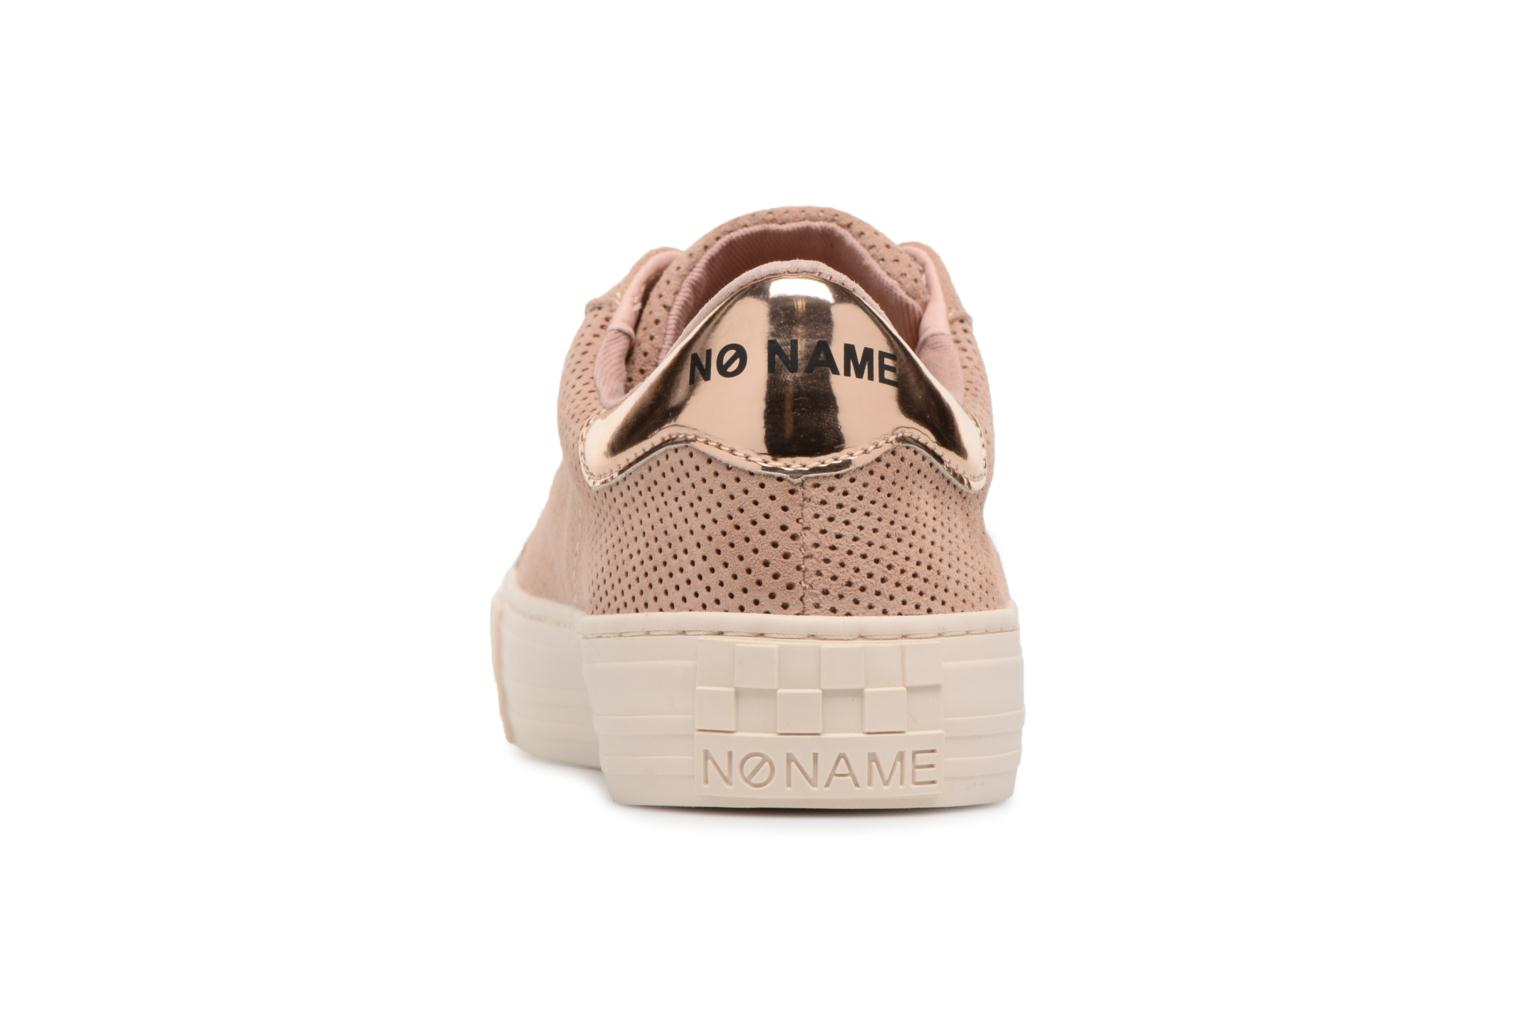 No Name Arcade Sneaker Punch Goat Sued